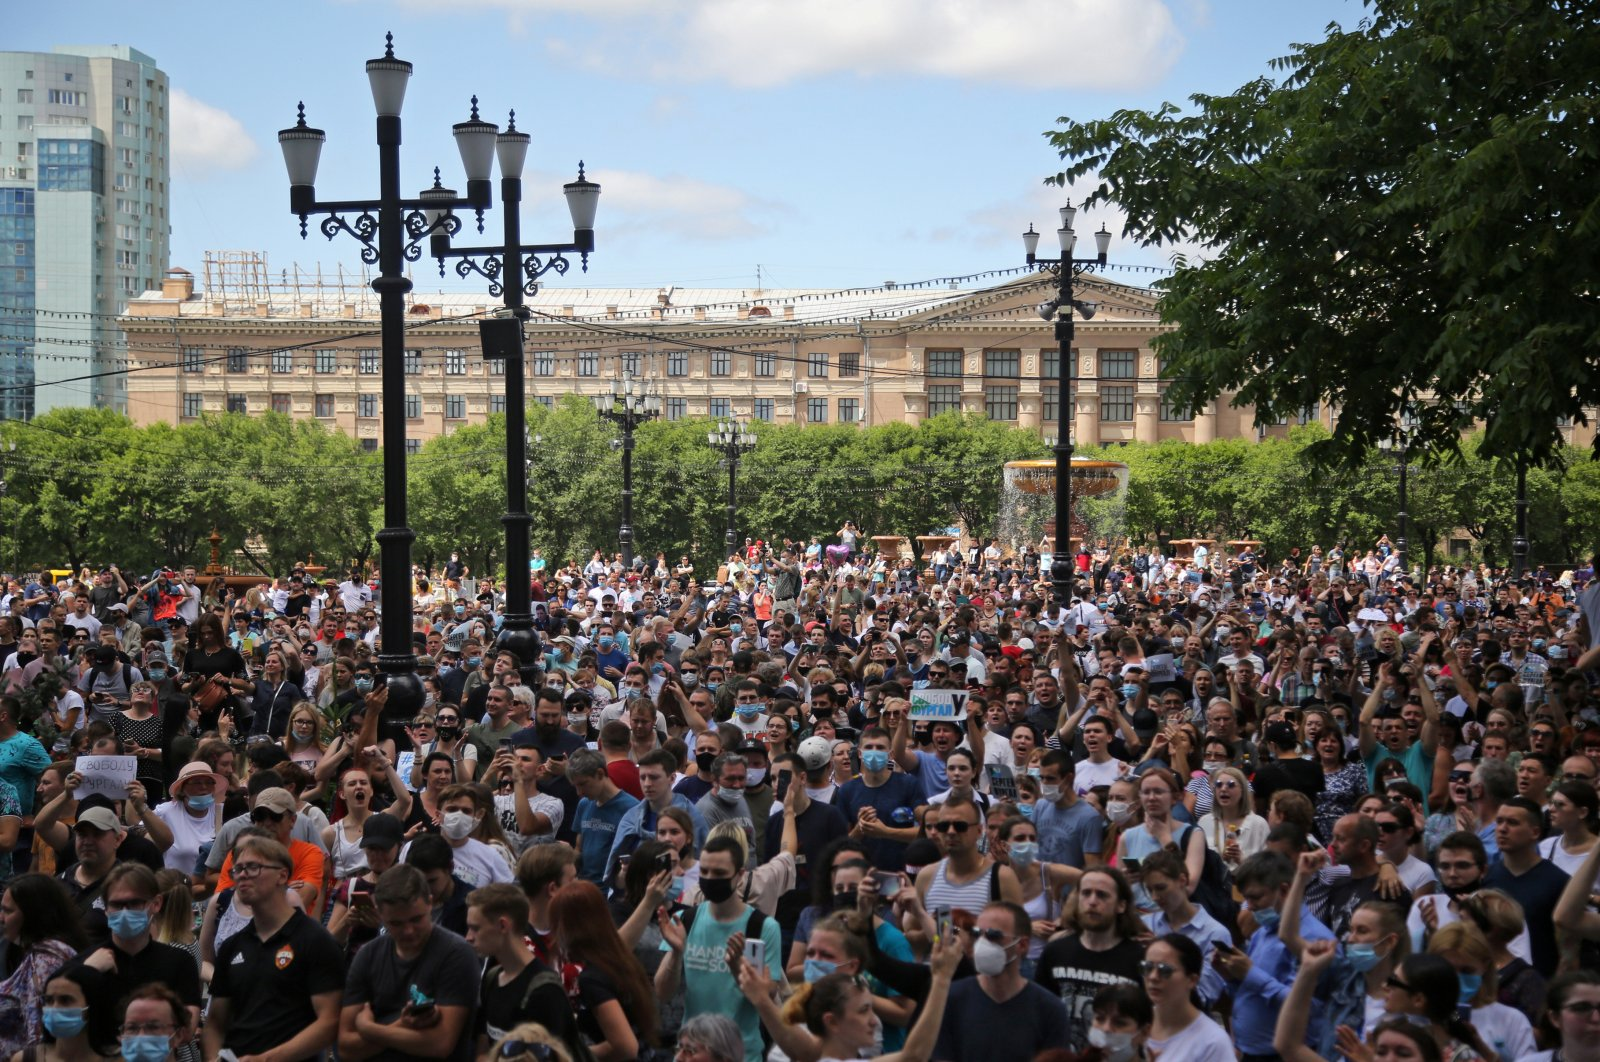 People take part in a rally in support of the governor of the far eastern Khabarovsk region Sergei Furgal, who is being held in pre-trial detention after being charged with organizing the murder of several entrepreneurs 15 years ago, Khabarovsk, Russia July 11, 2020. (Reuters Photo)